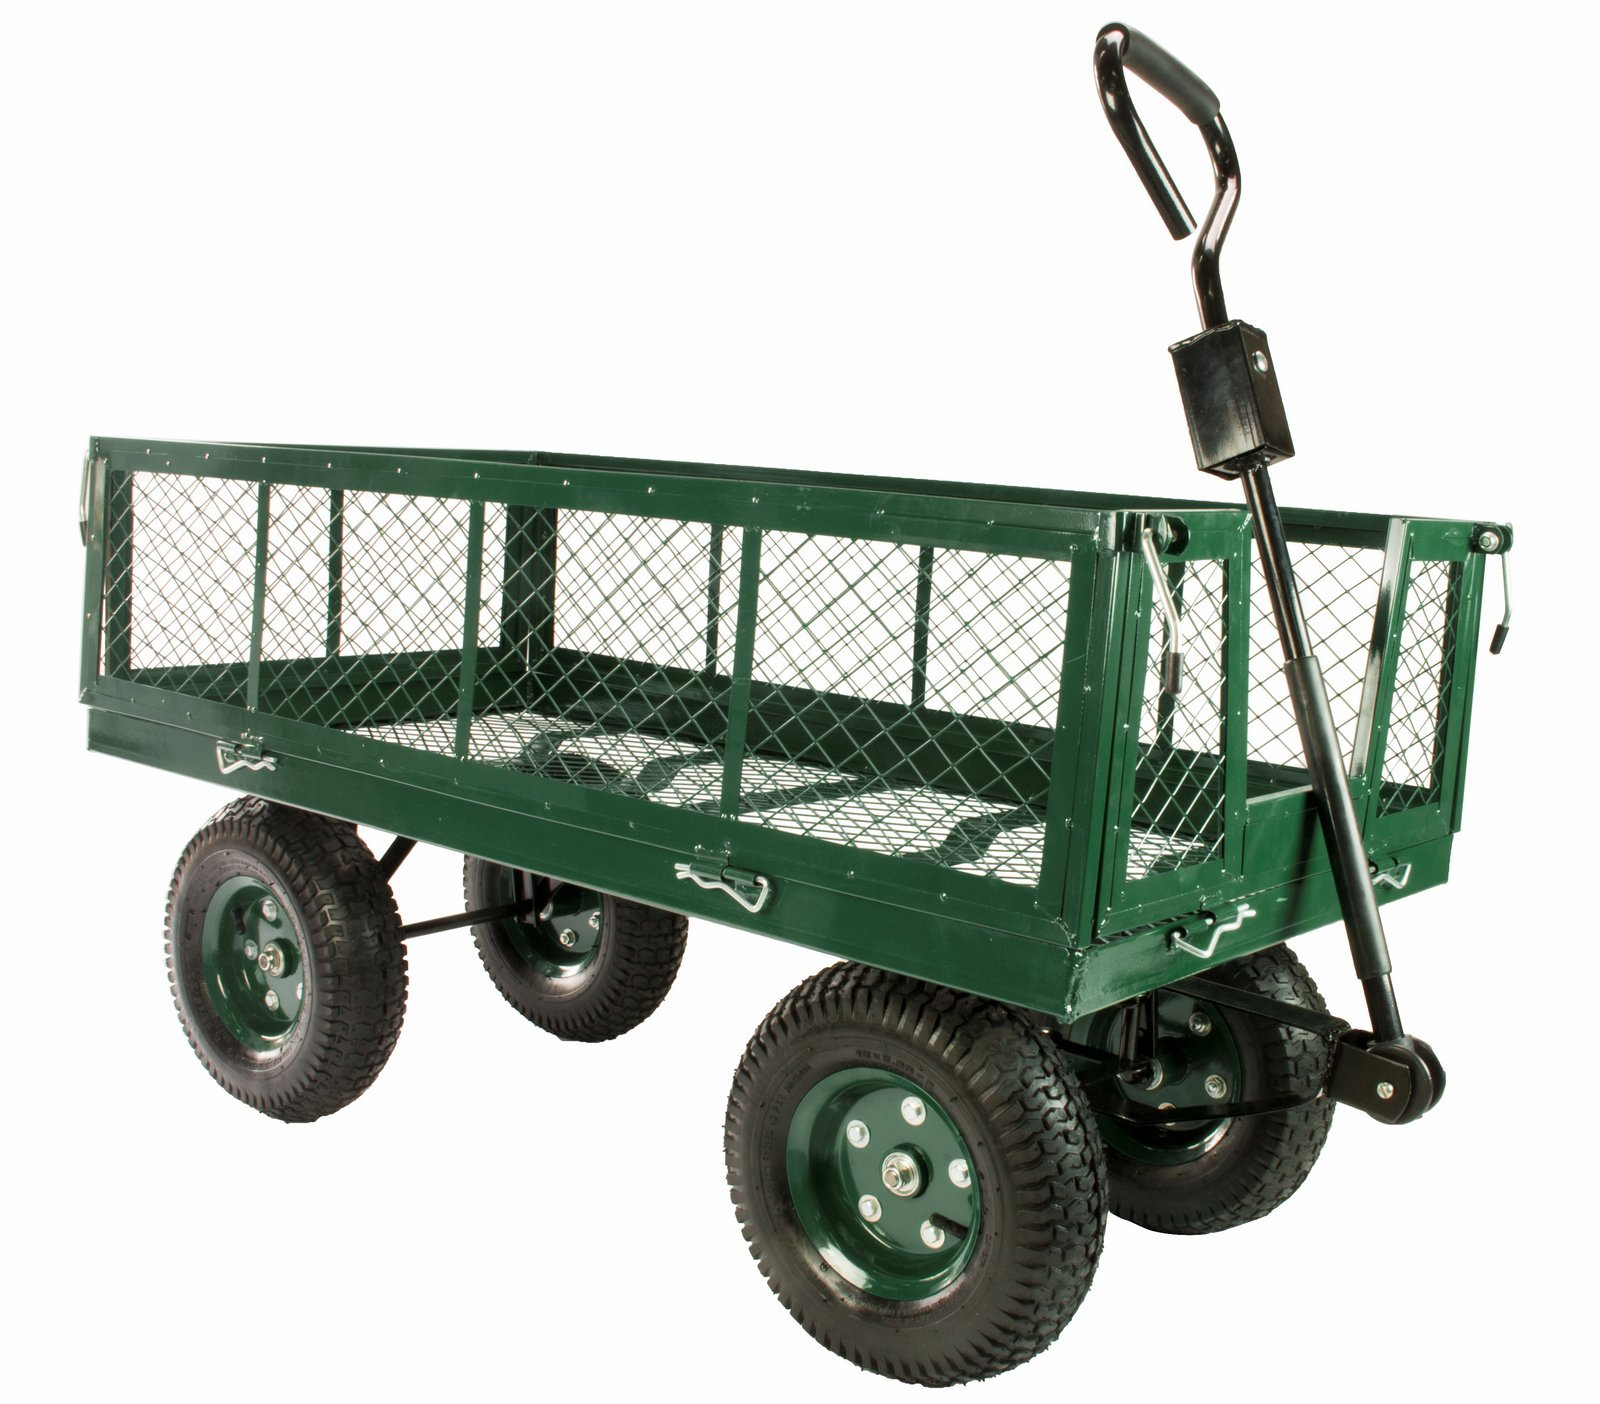 Erie Tools 1000 lbs Flatbed Utility Garden Cart 48''x 24'' with Removable Sides